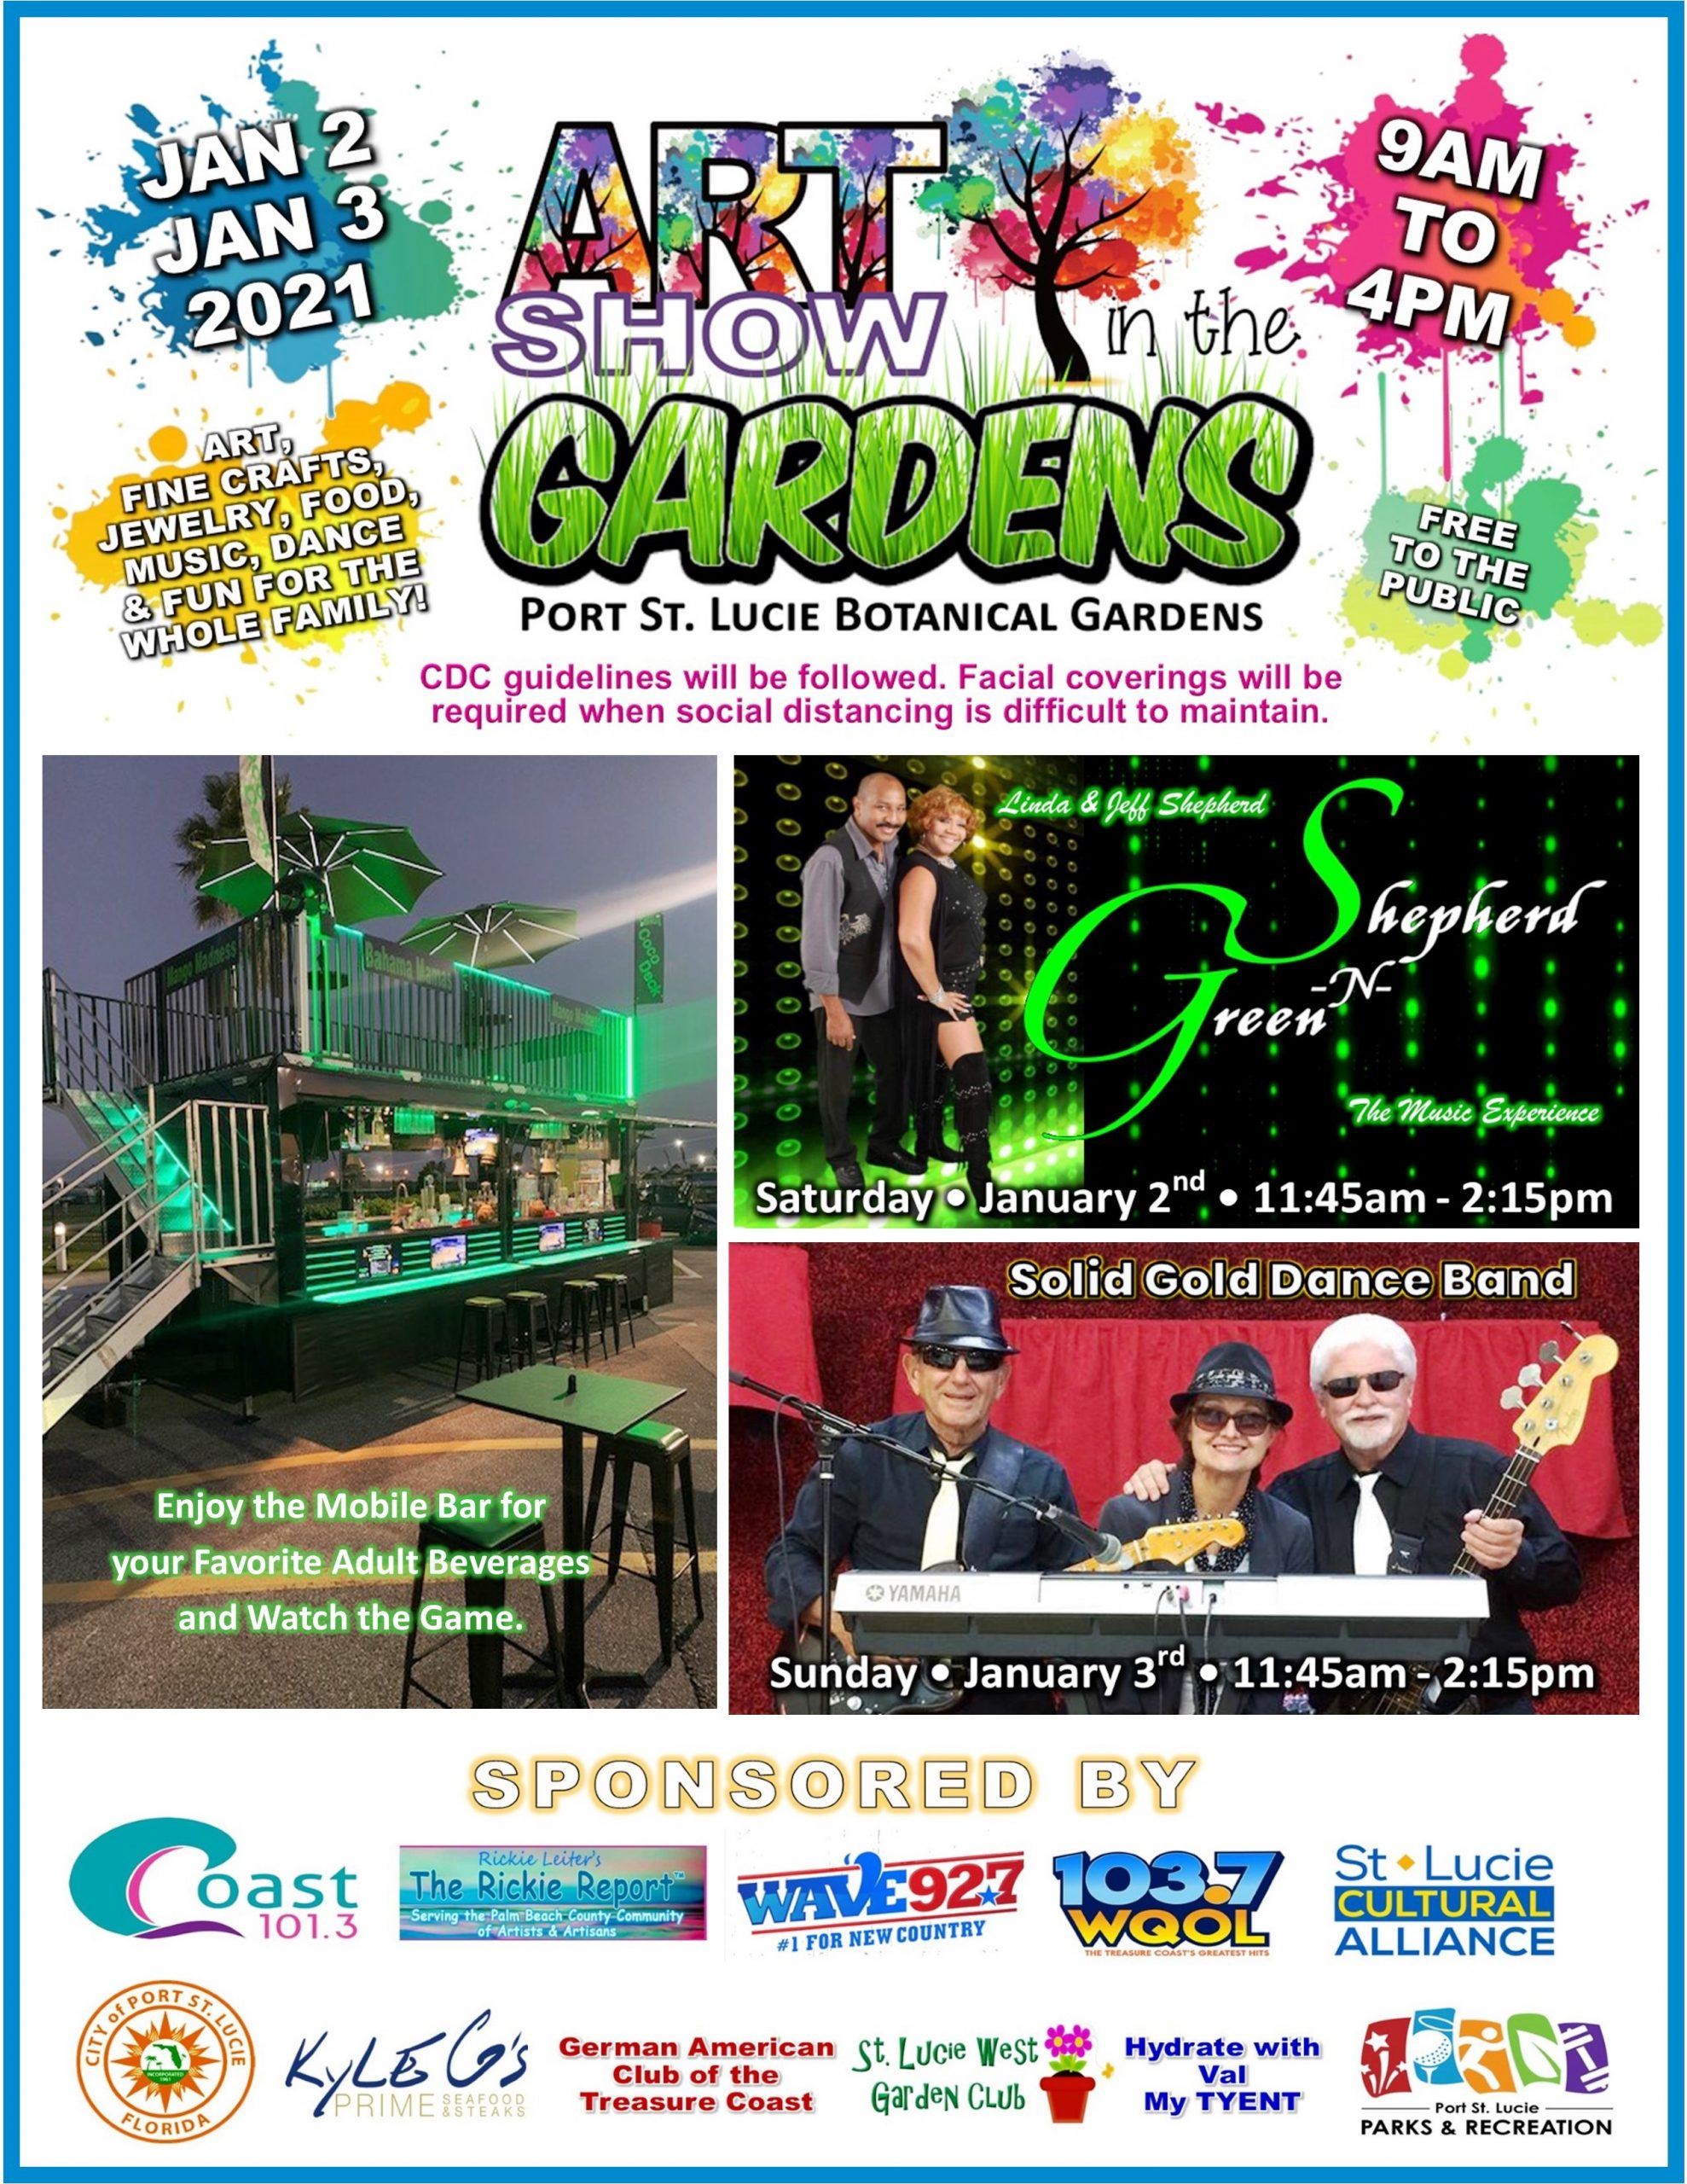 Graphic showing the entertainment for the 2nd Annual Art Show in the Gardens, January 2 and 3, 2021 at the Port St. Lucie Botanical Gardens.